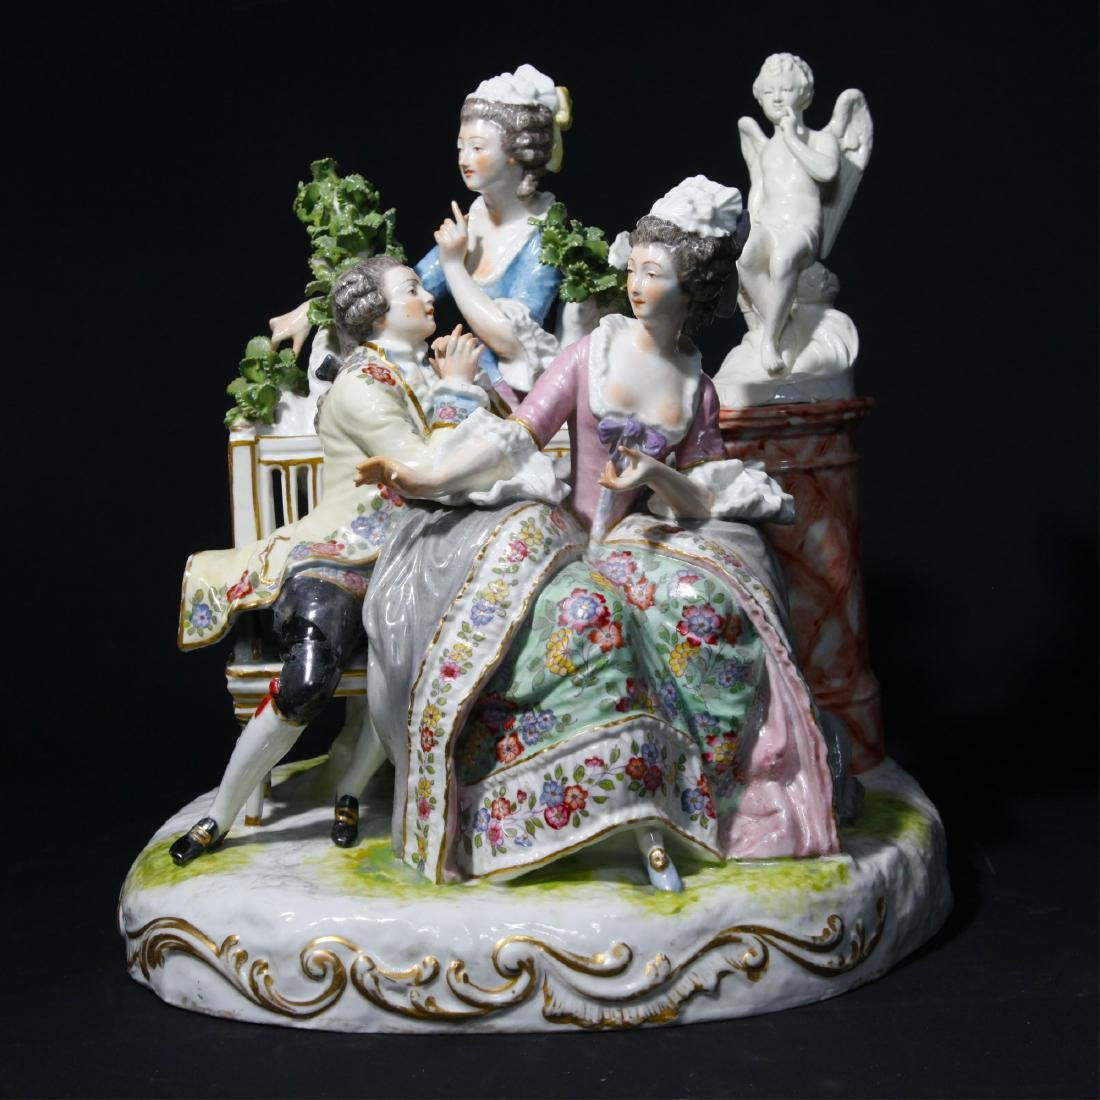 SAMSON 19thC LARGE FRENCH PORCELAIN GROUP FIGURINE